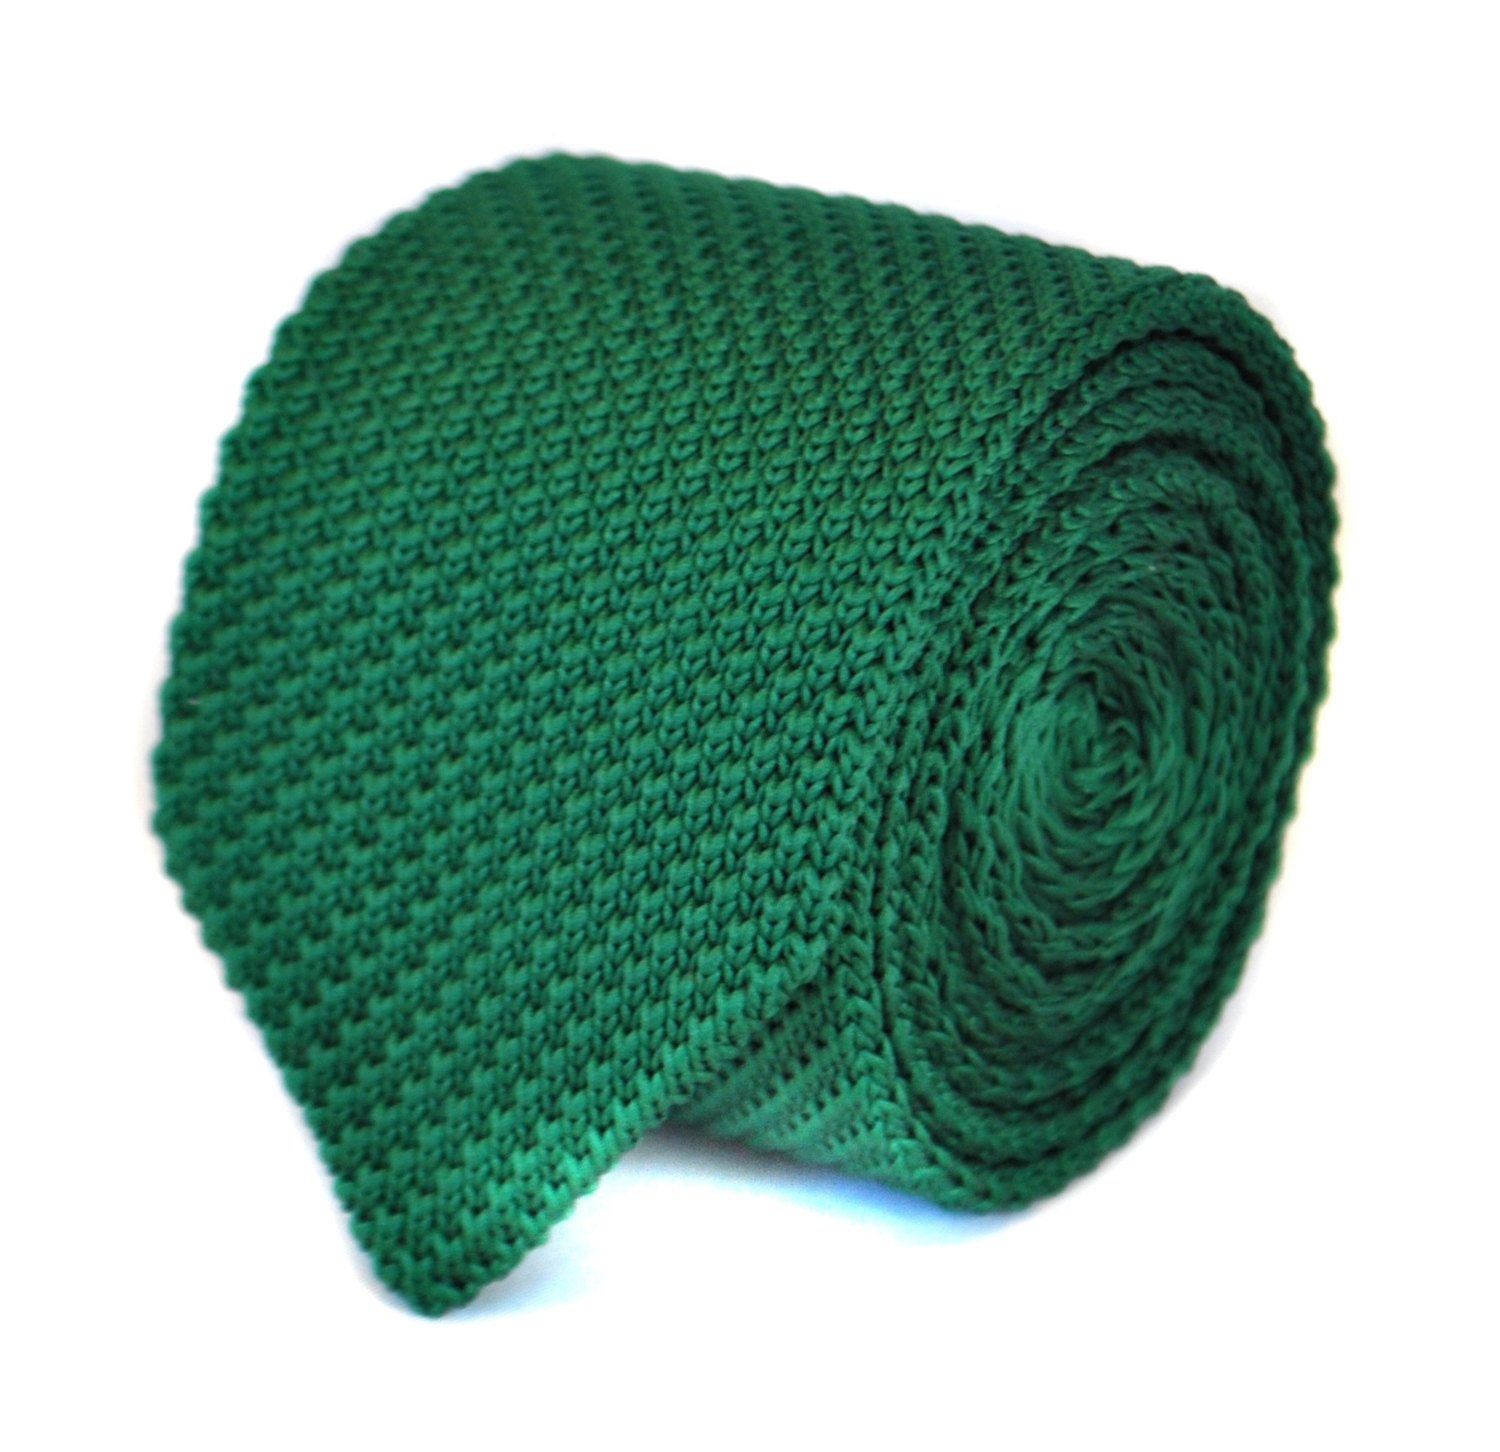 plain dark green knitted tie in standard slim 8cm width with pointed end by Fred